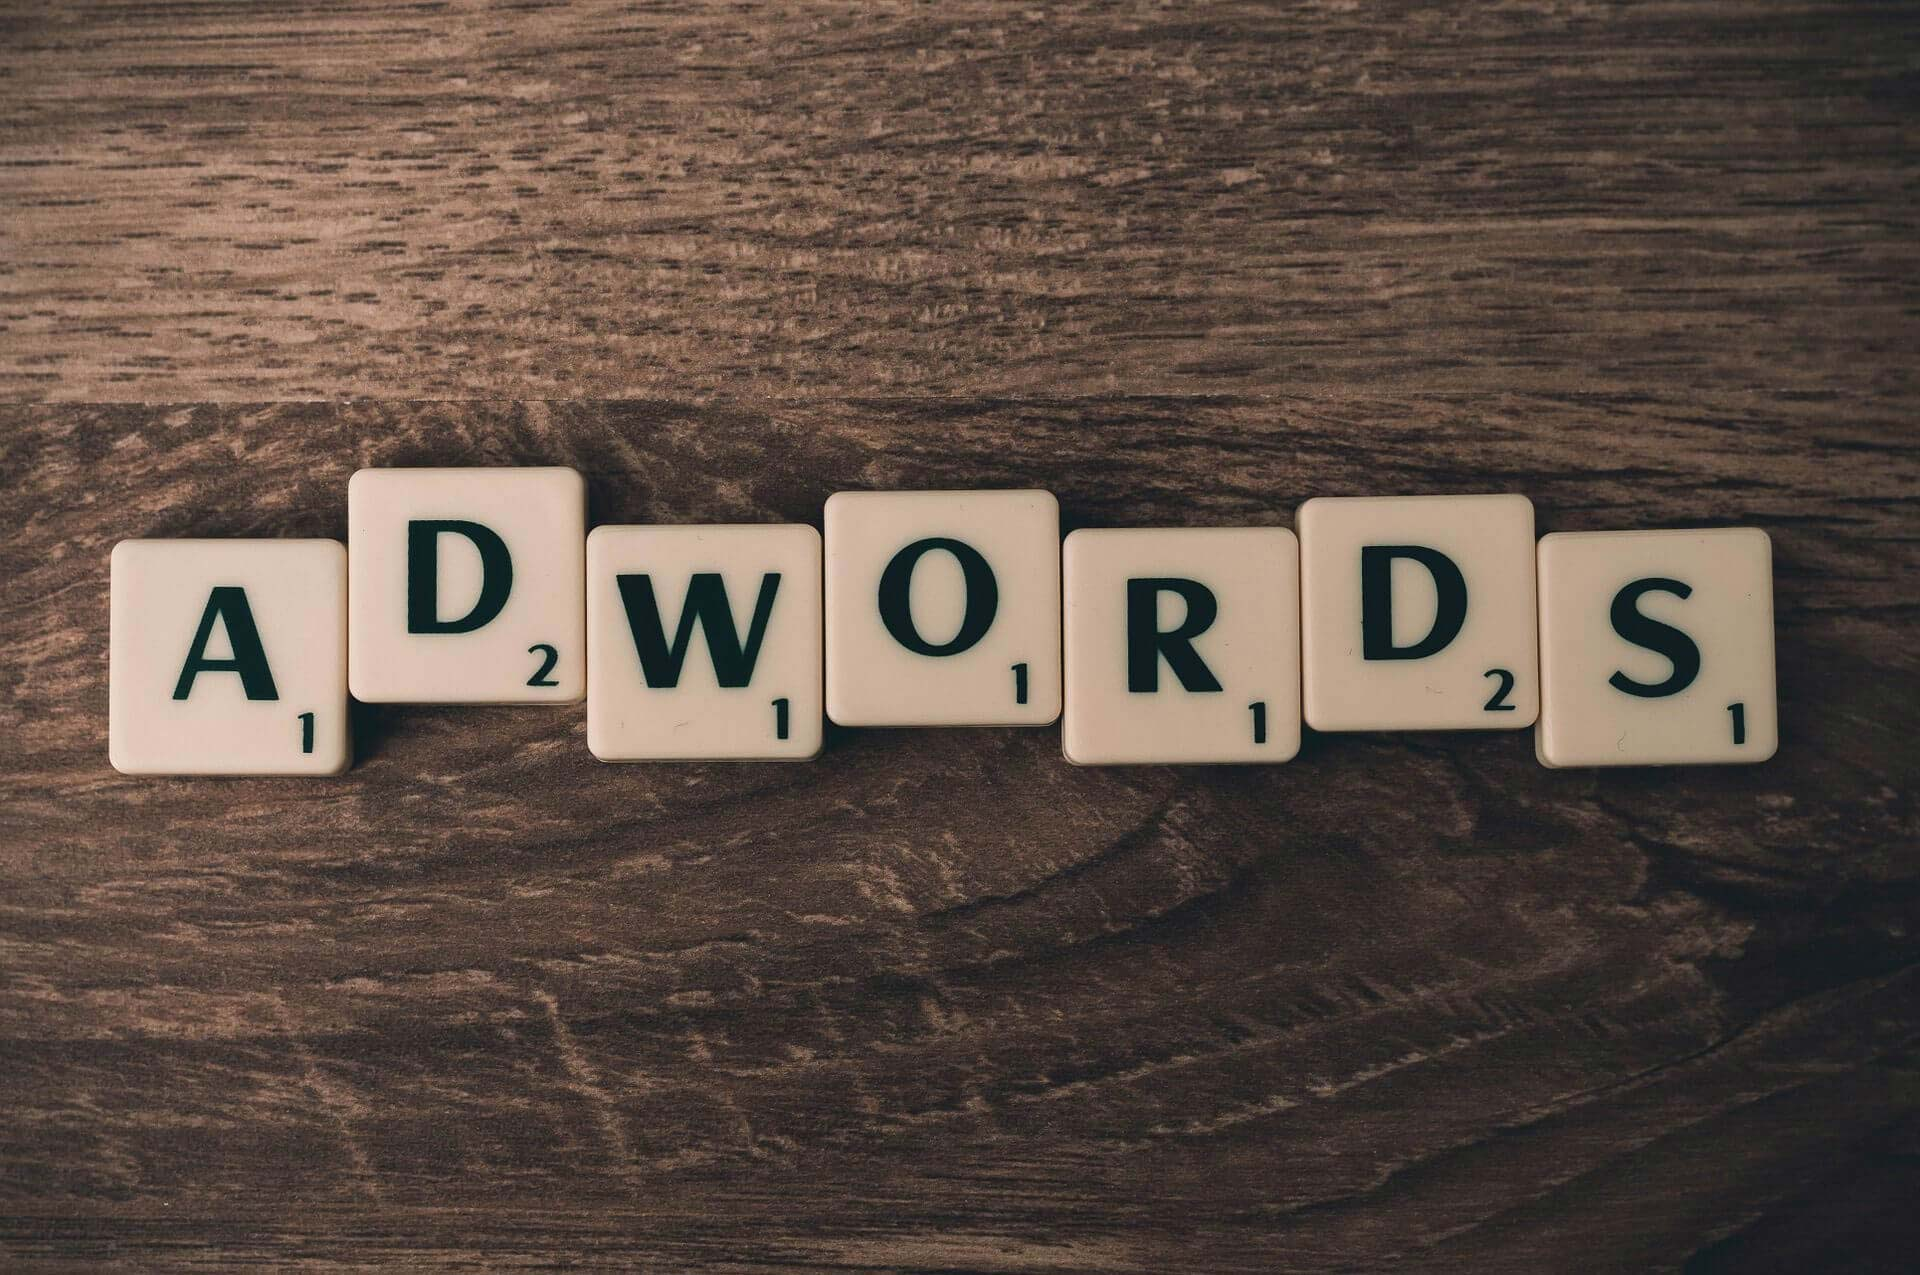 Expanded Text Ads are Coming to Google AdWords